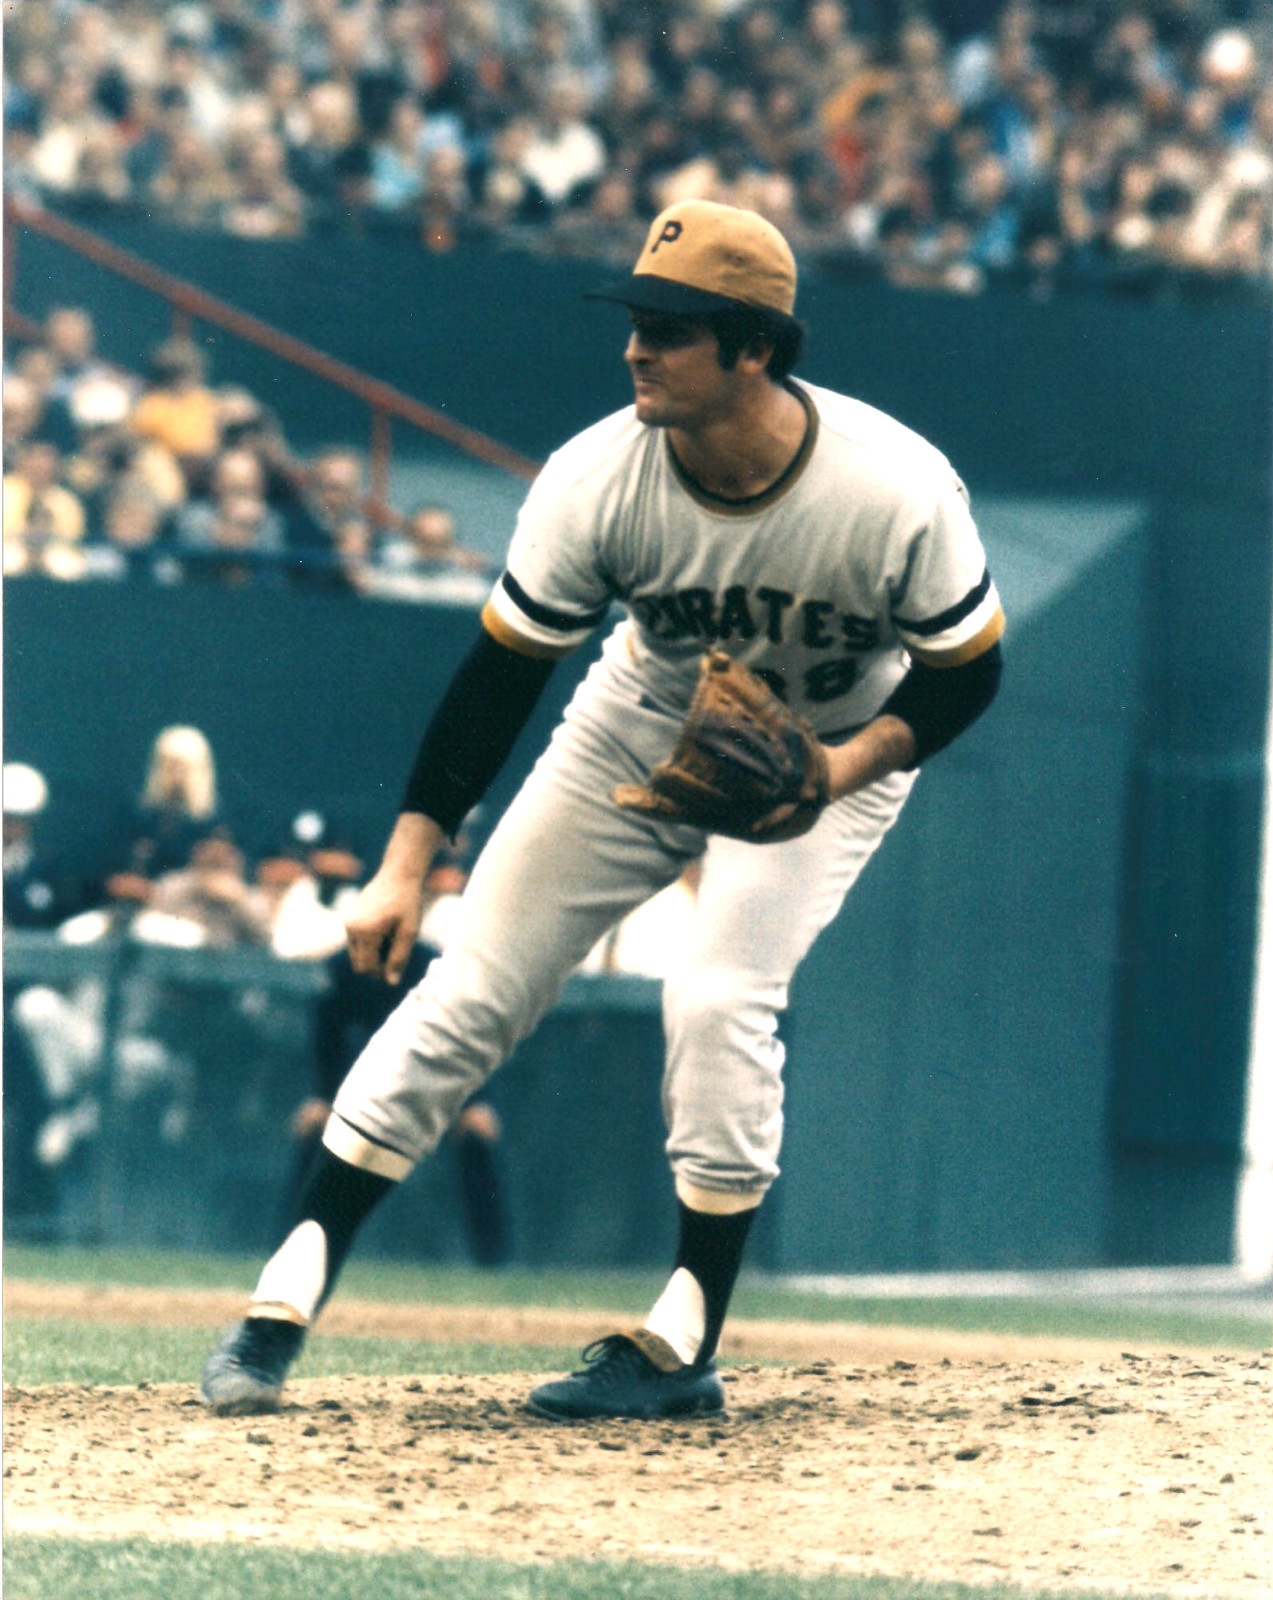 1976 Pittsburgh Pirates season